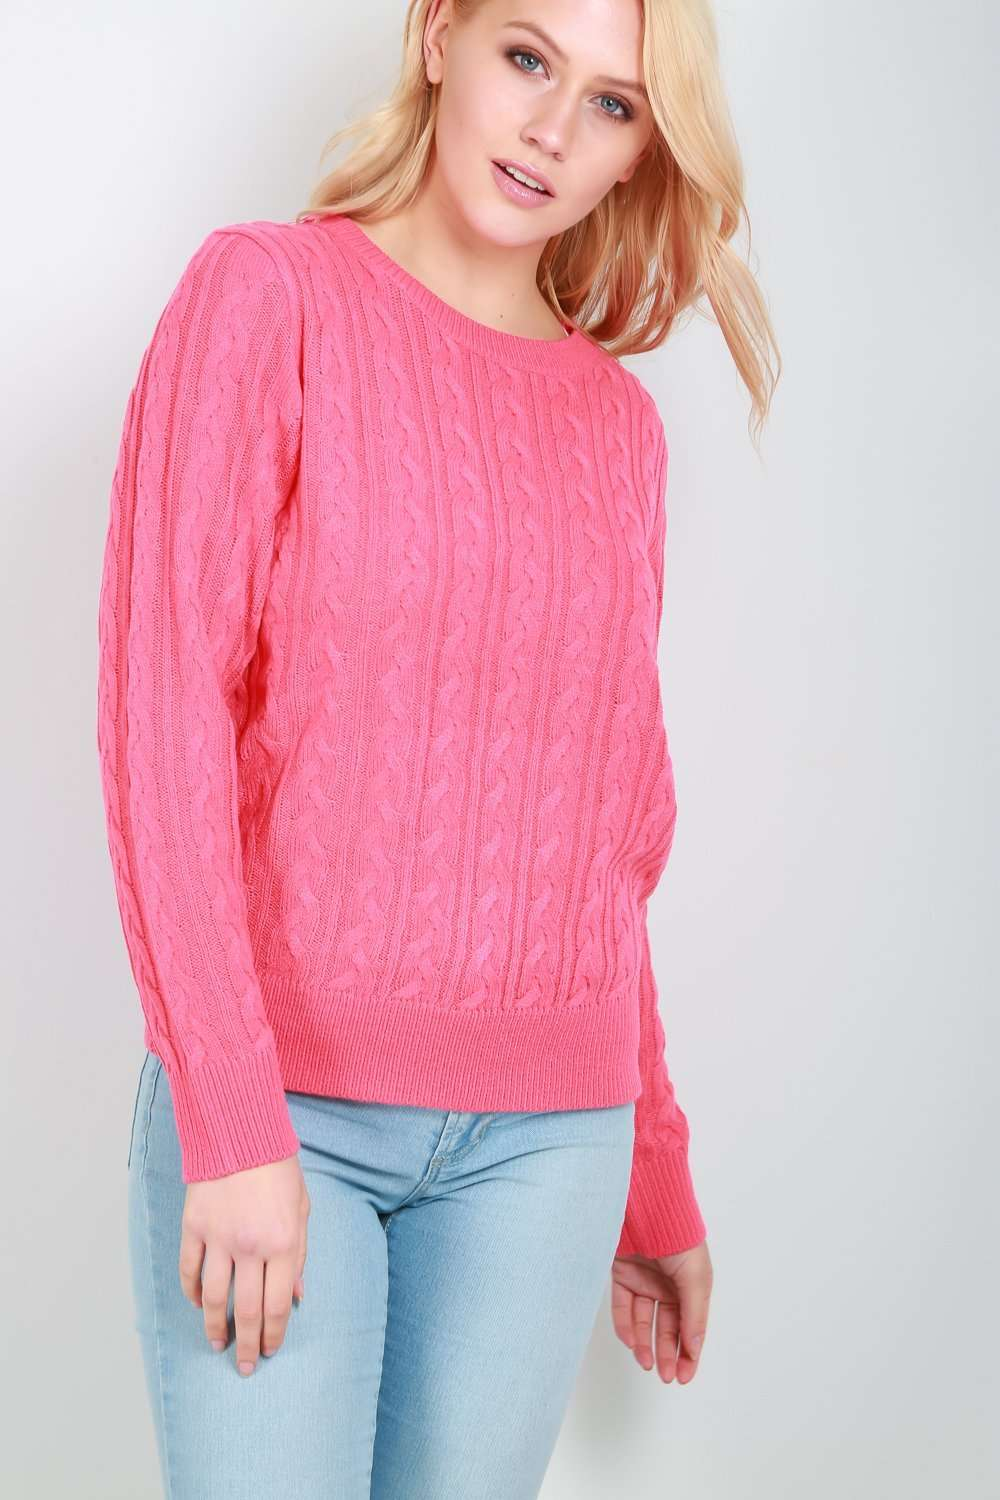 Long Sleeve Mint Cable Knit Jumper - bejealous-com